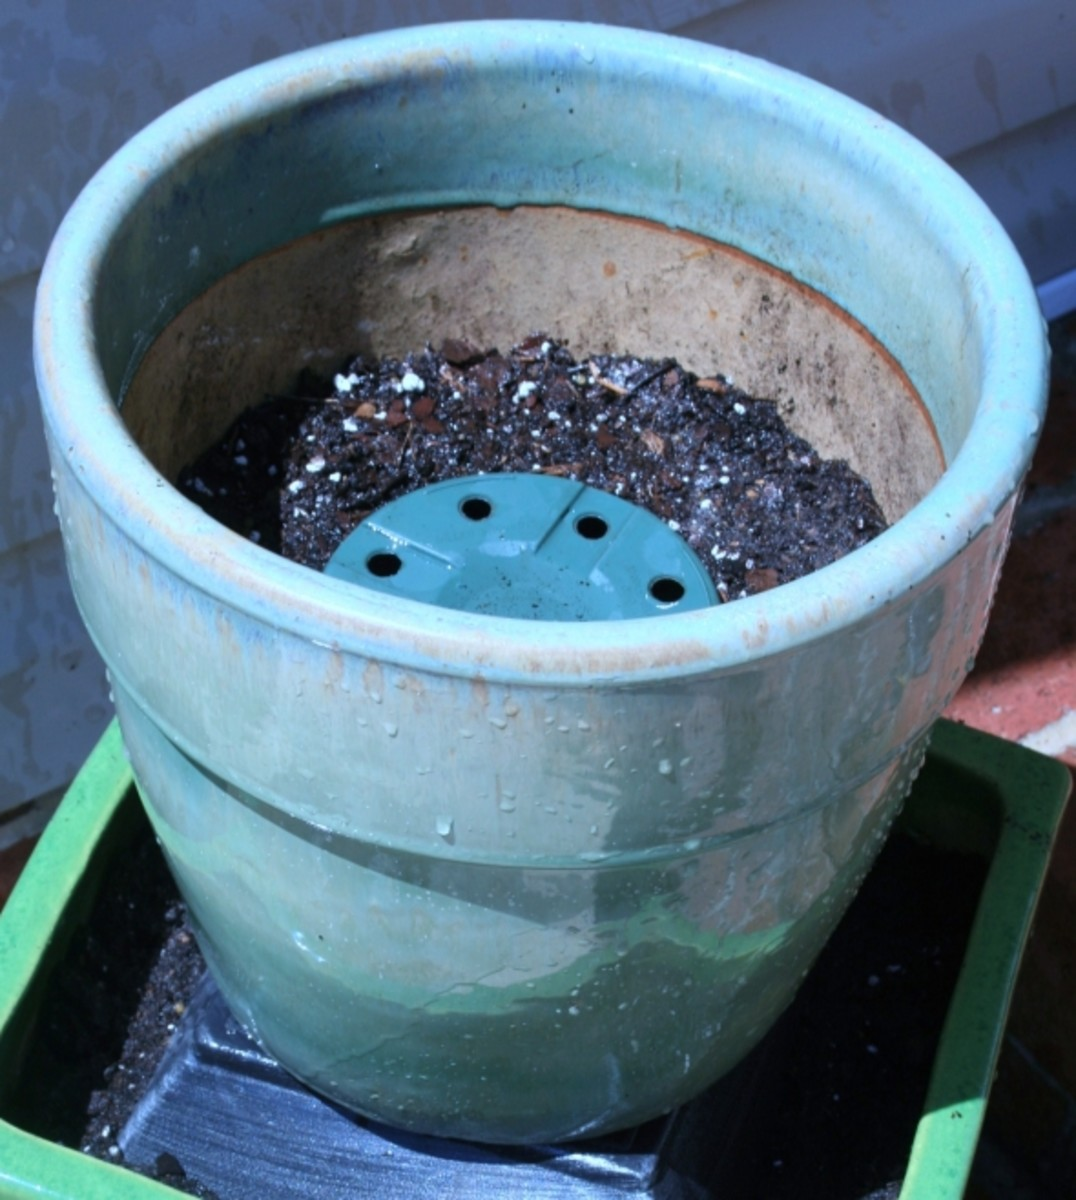 Inserting pot fillers like old plastic nursery pots and styrofoam will decrease the amount of potting soil needed & make pots lighter.